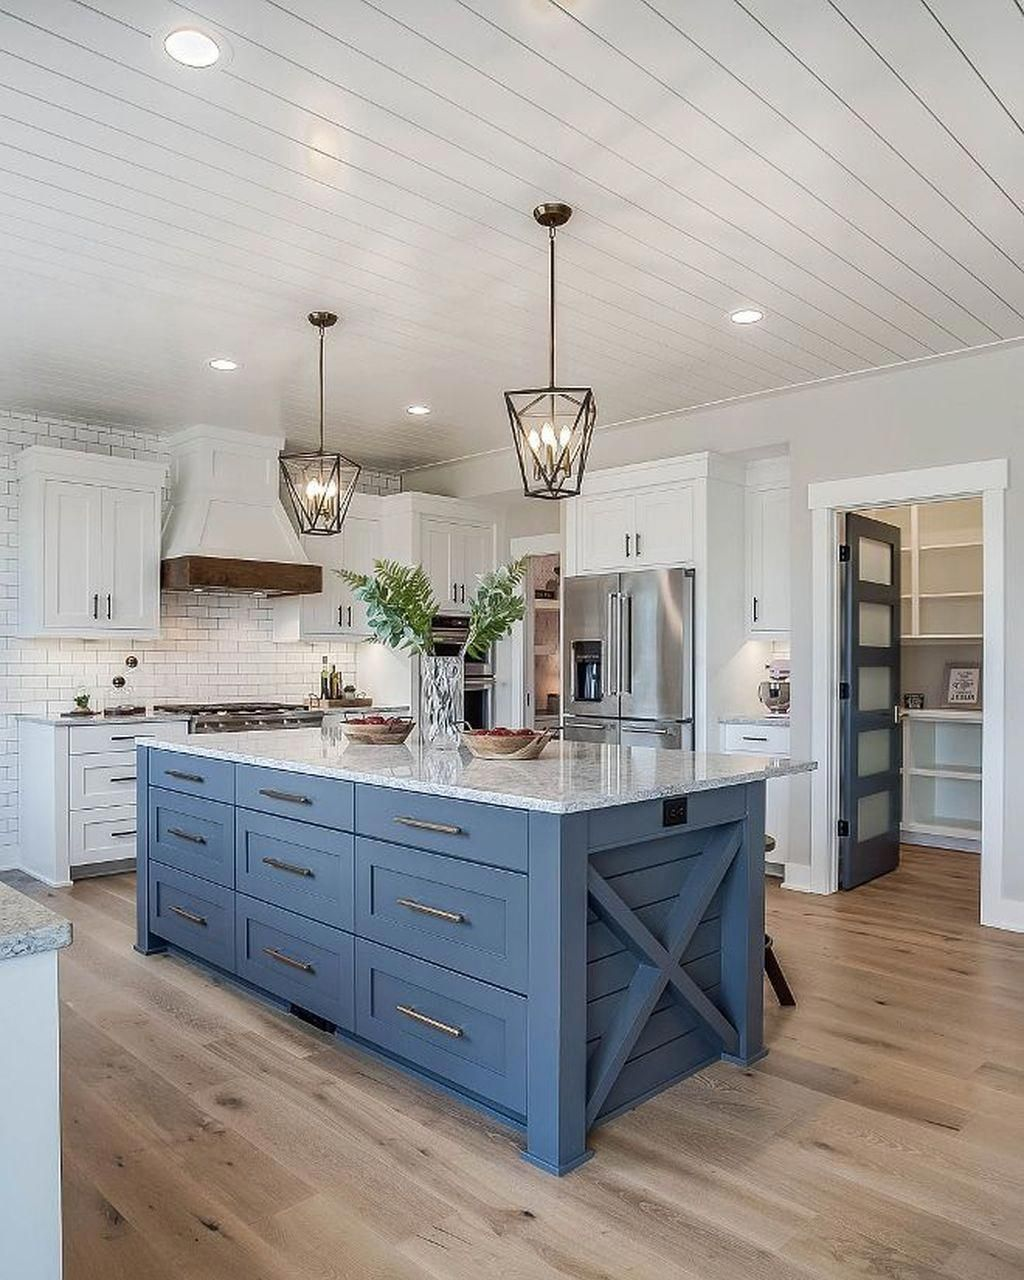 How To Choose A Dish Every Day In 2020 Farmhouse Kitchen Design